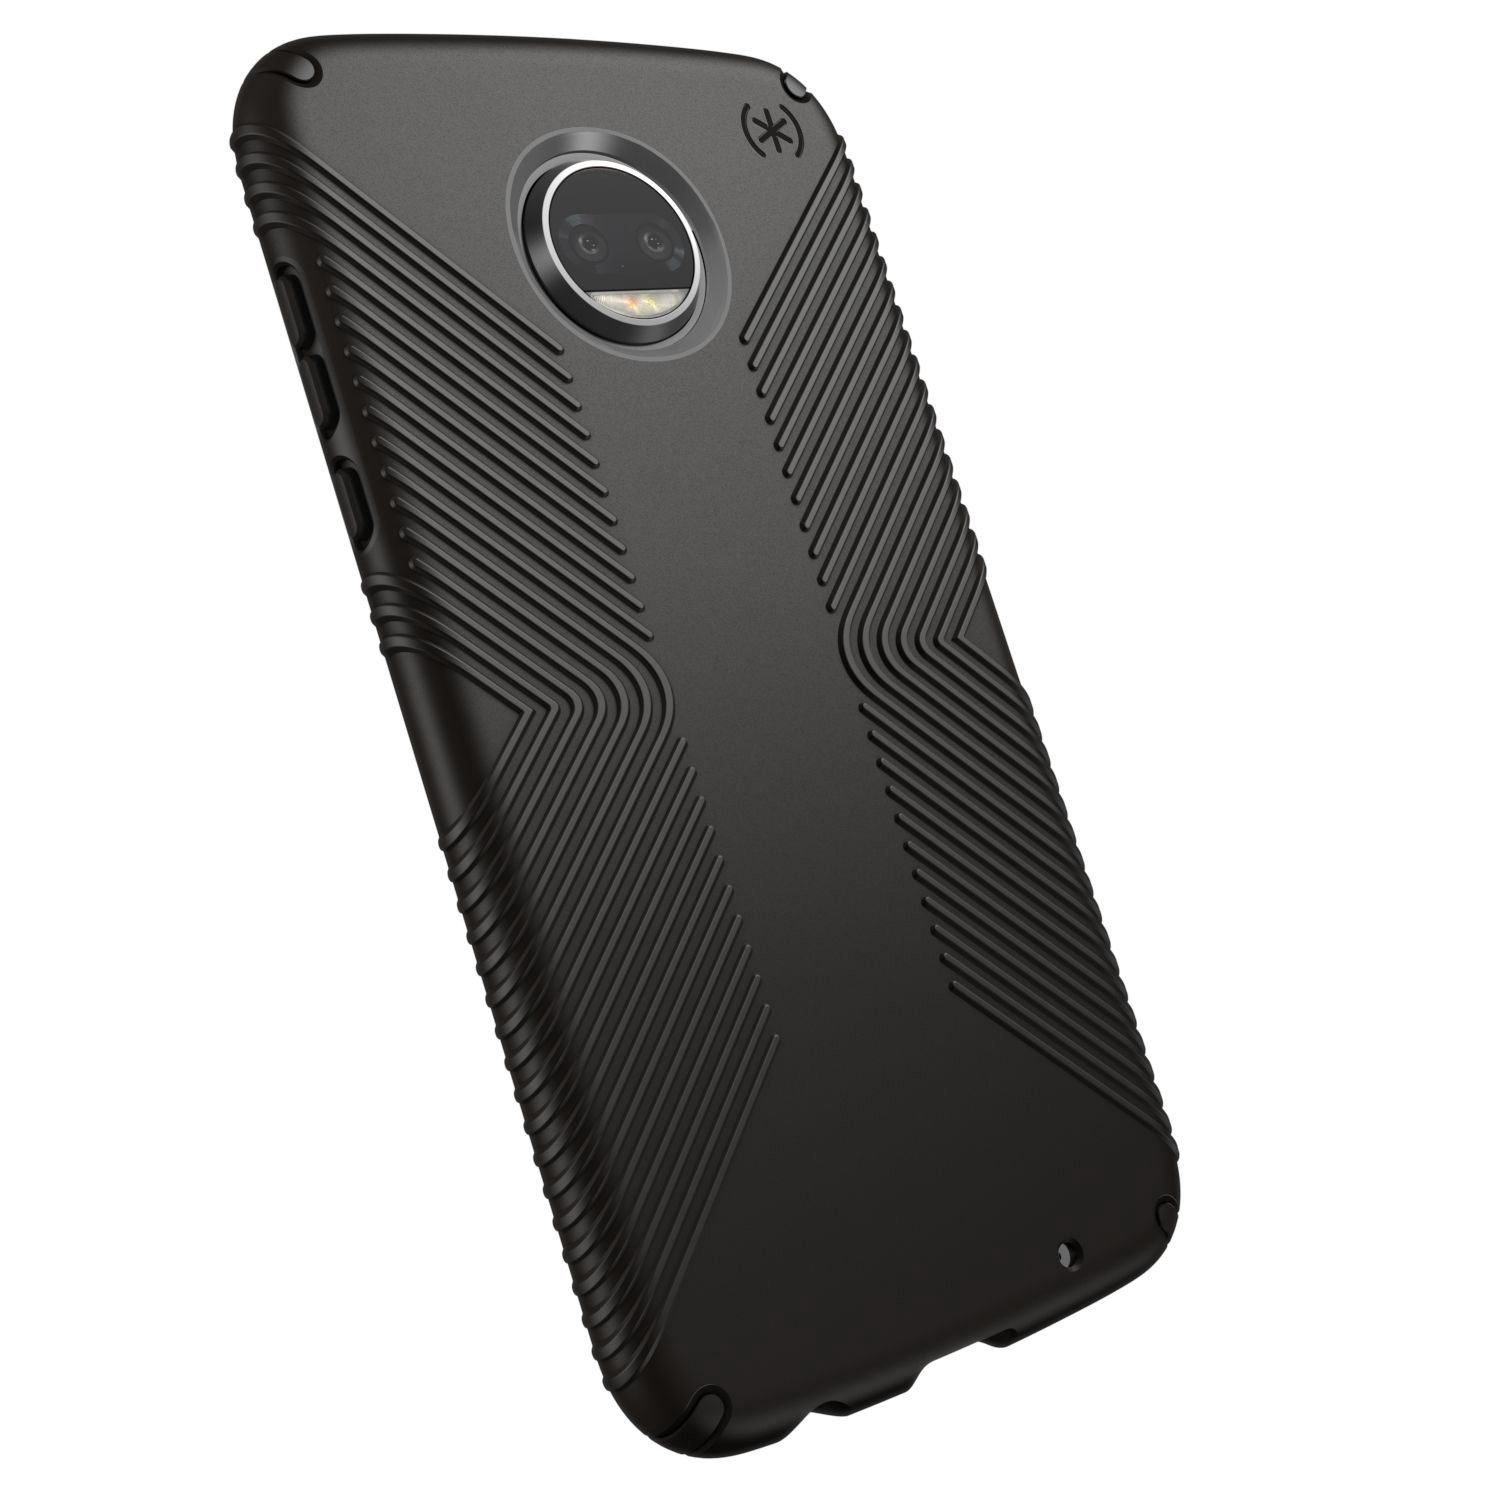 Twilight Vision White Speck That >> Speck Presidio Grip Motorola Moto Z2 Play Cases Black Black